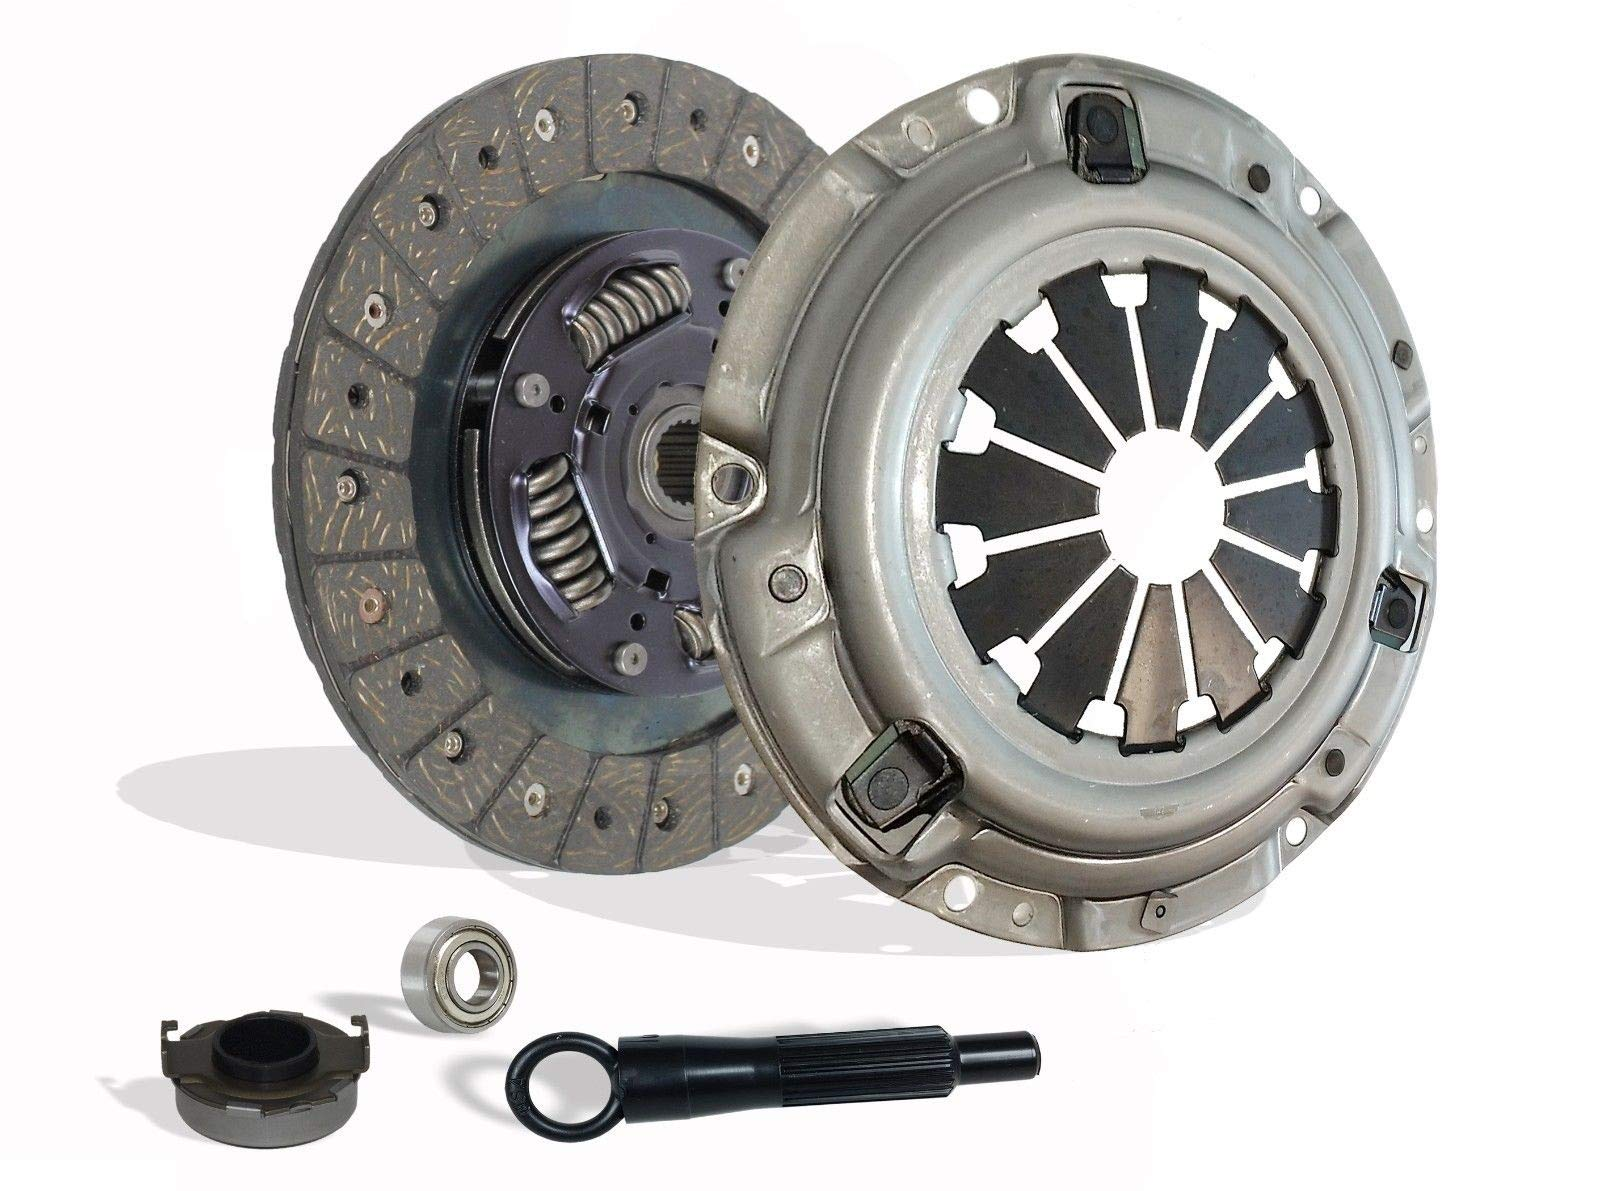 Clutch Kit works with Honda Civic Delsol Acura El DX EX GX LX Reverb VALUE EX-R CX SI VX 1992-2005 1.5L l4 1.6L l4 1.7L l4 GAS SOHC Naturally Aspirated (D15; D16; D17)